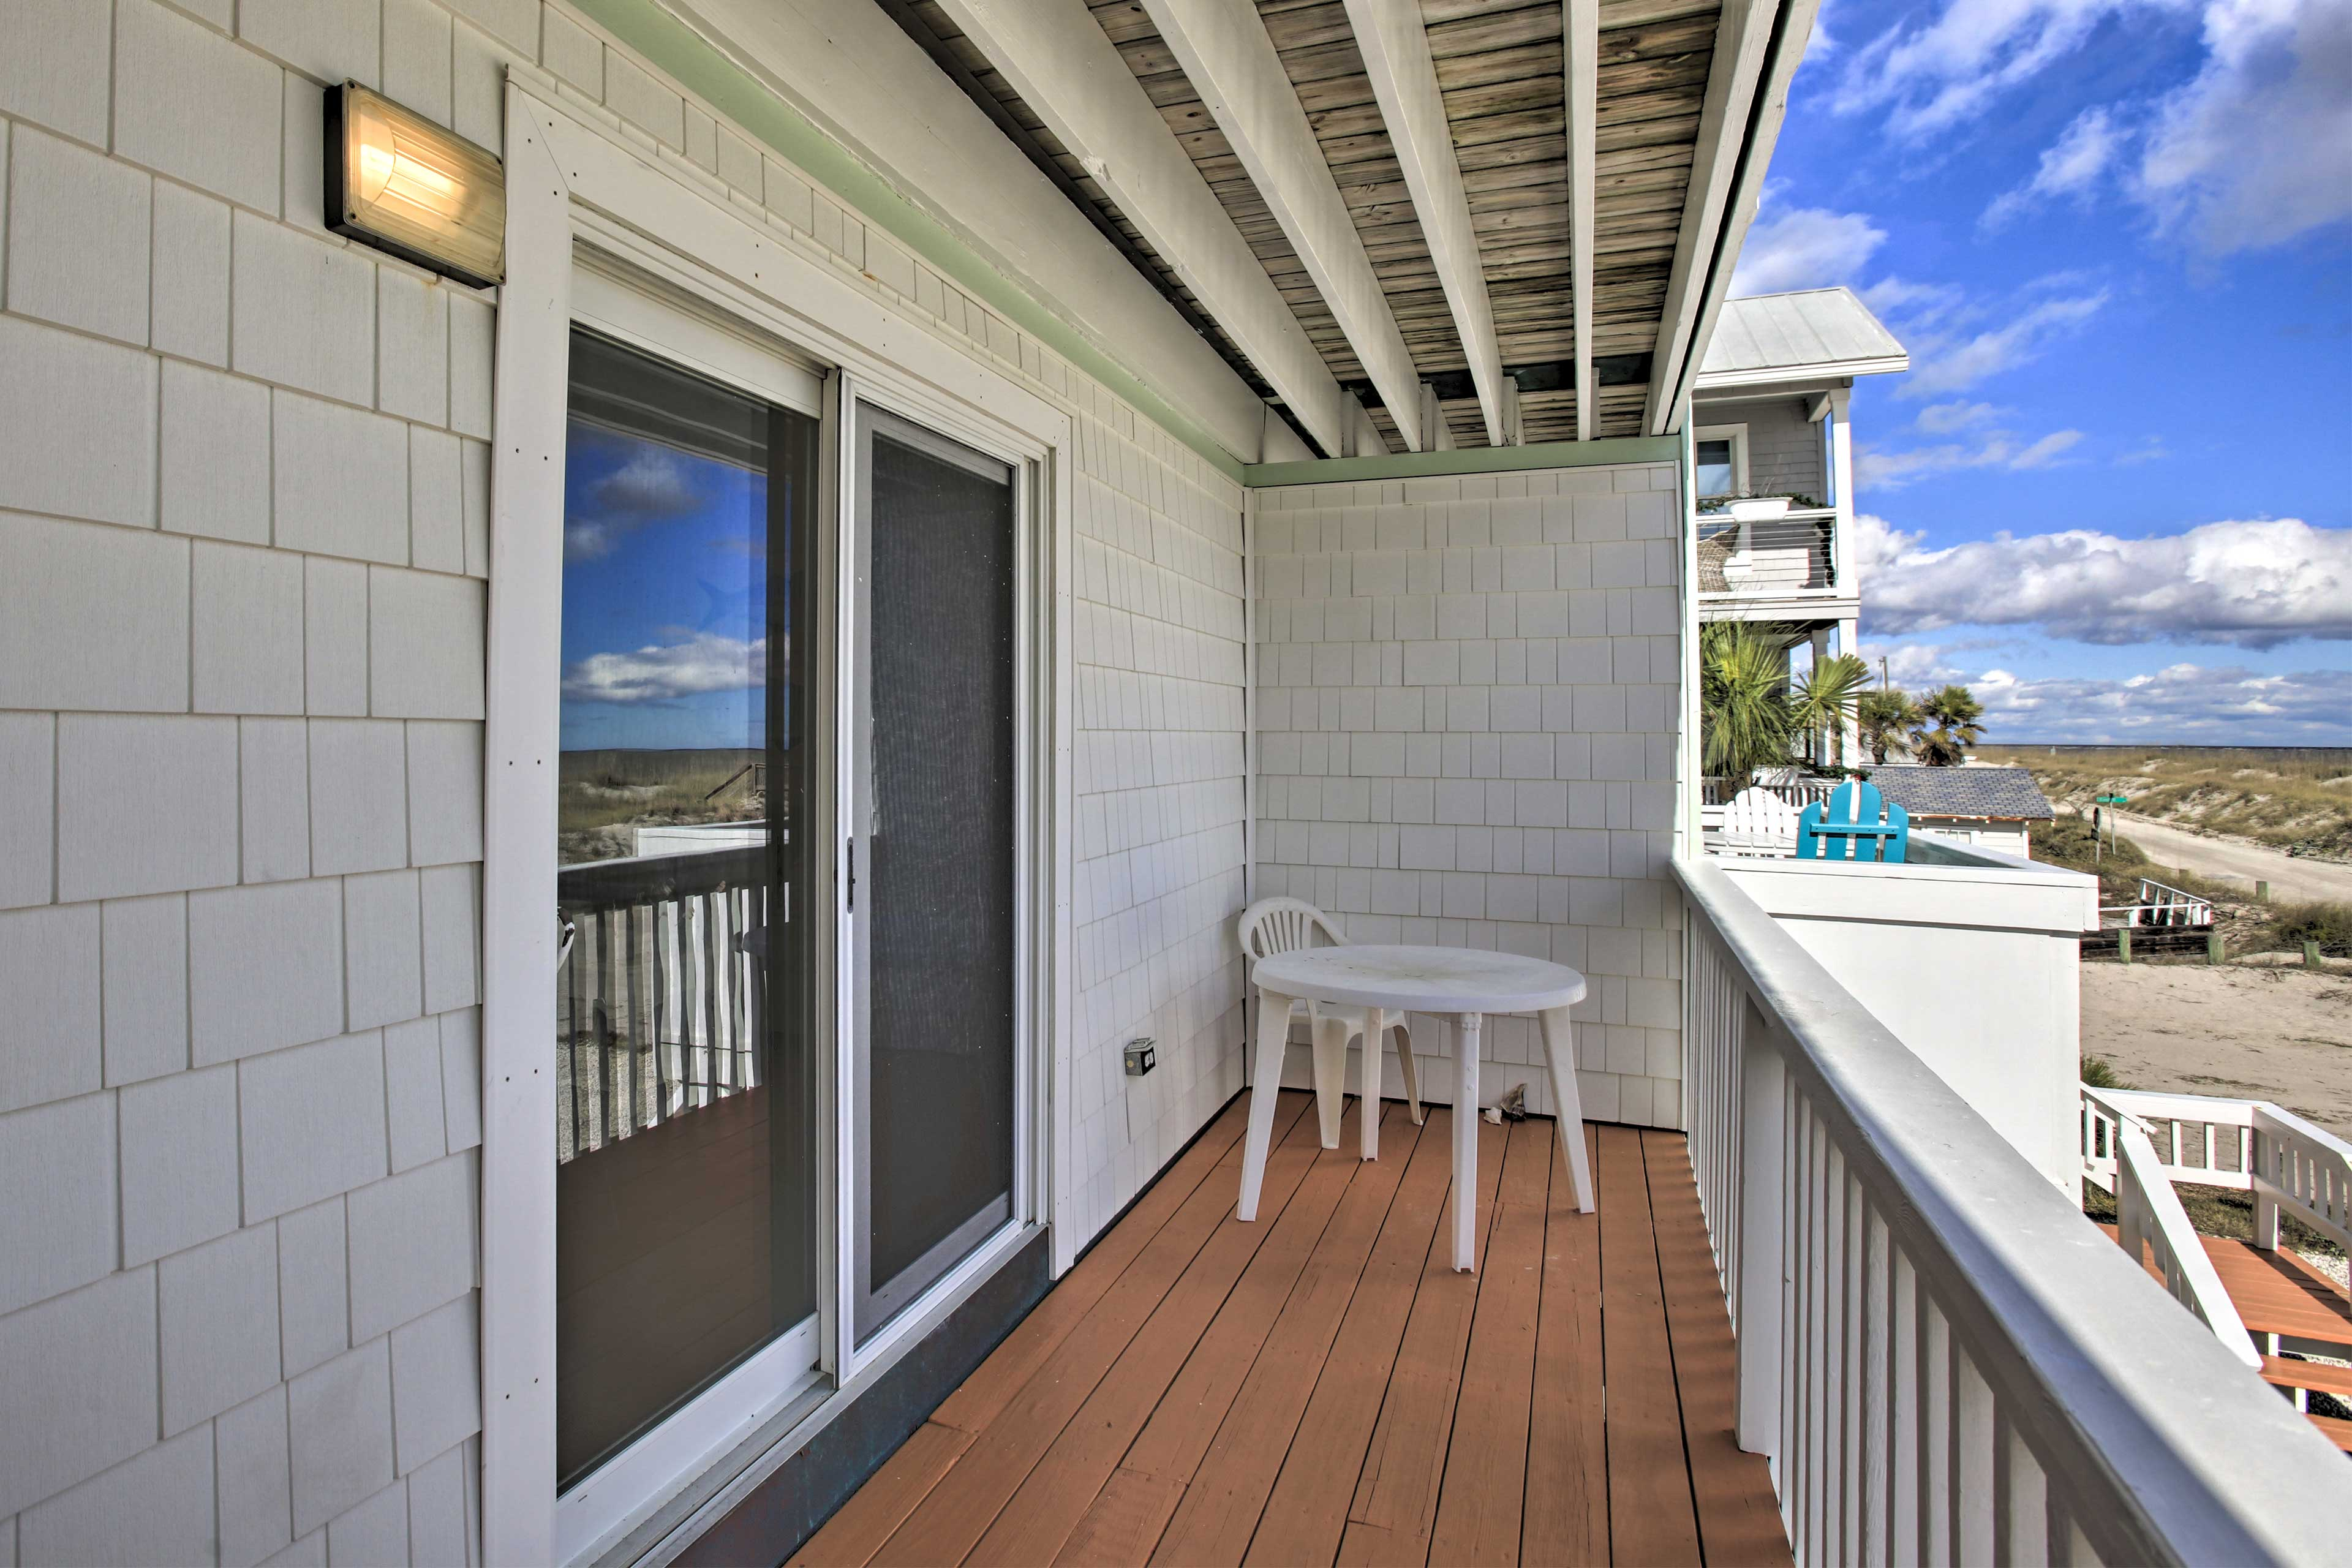 Sip your morning coffee on the deck while admiring the ocean view.